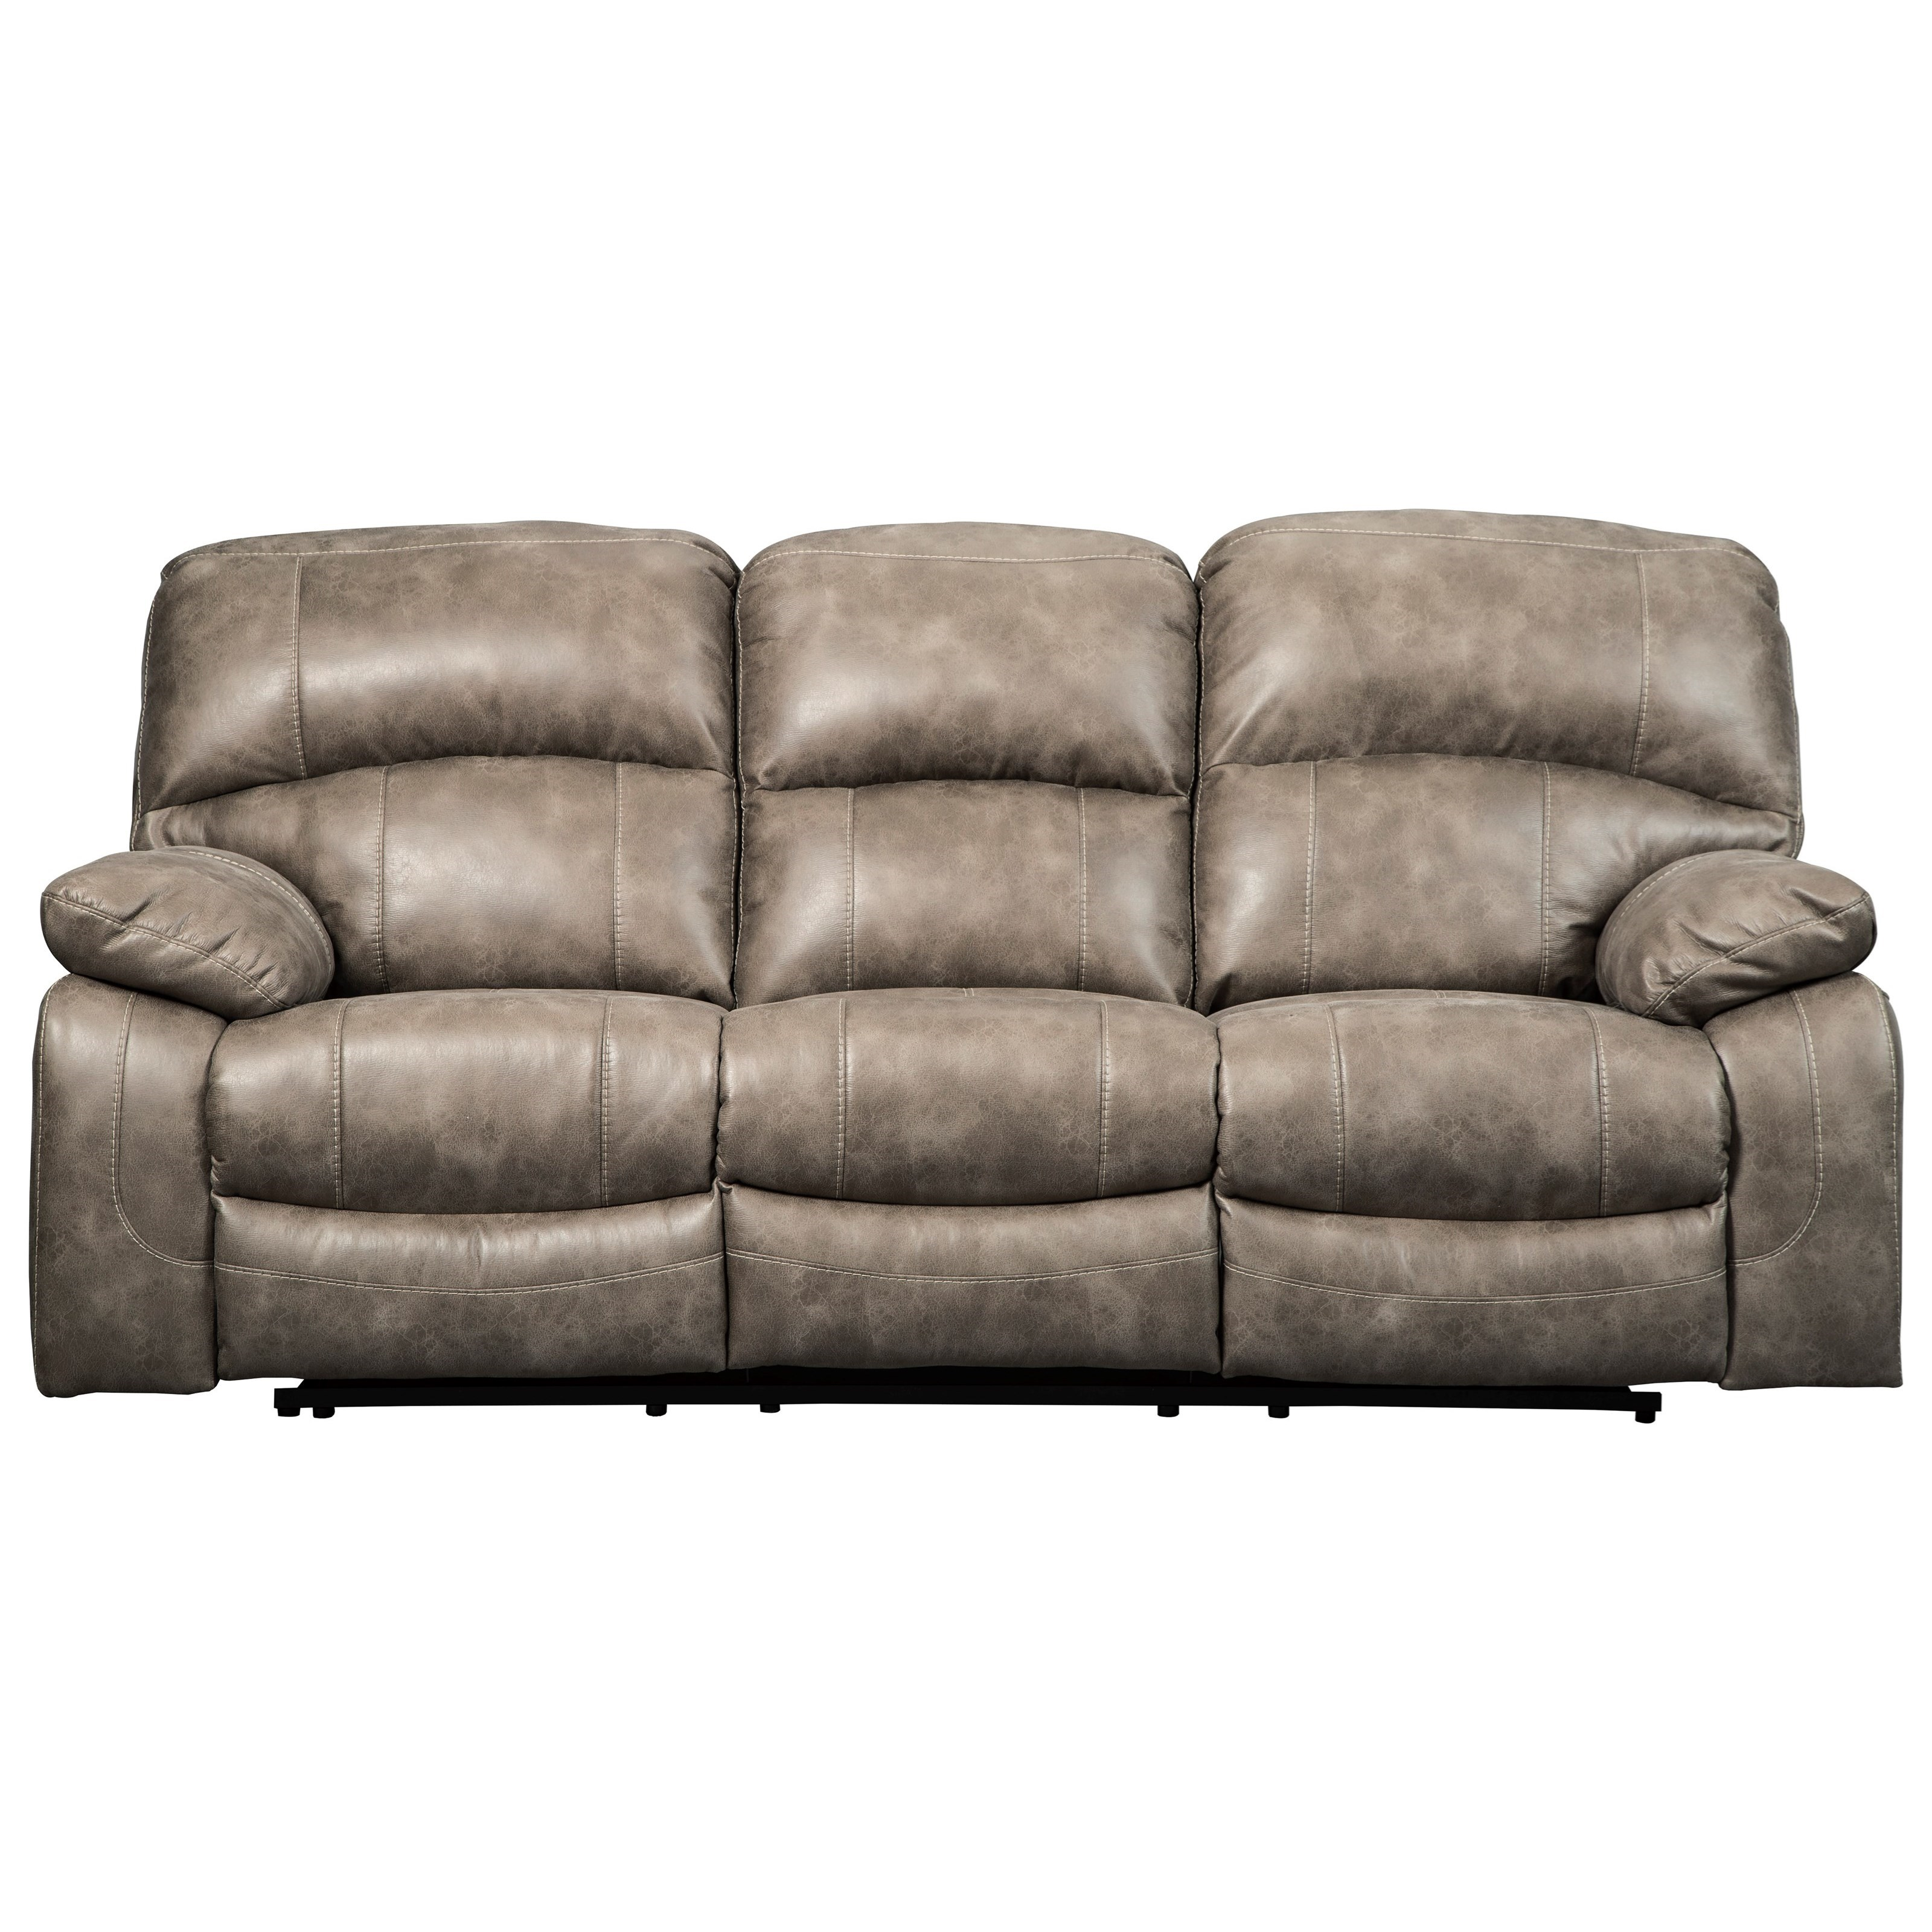 Signature Design by Ashley Dunwell Faux Leather Power Reclining Sofa     Signature Design by Ashley Dunwell Power Reclining Sofa w  Adjustable  Headrests   Item Number